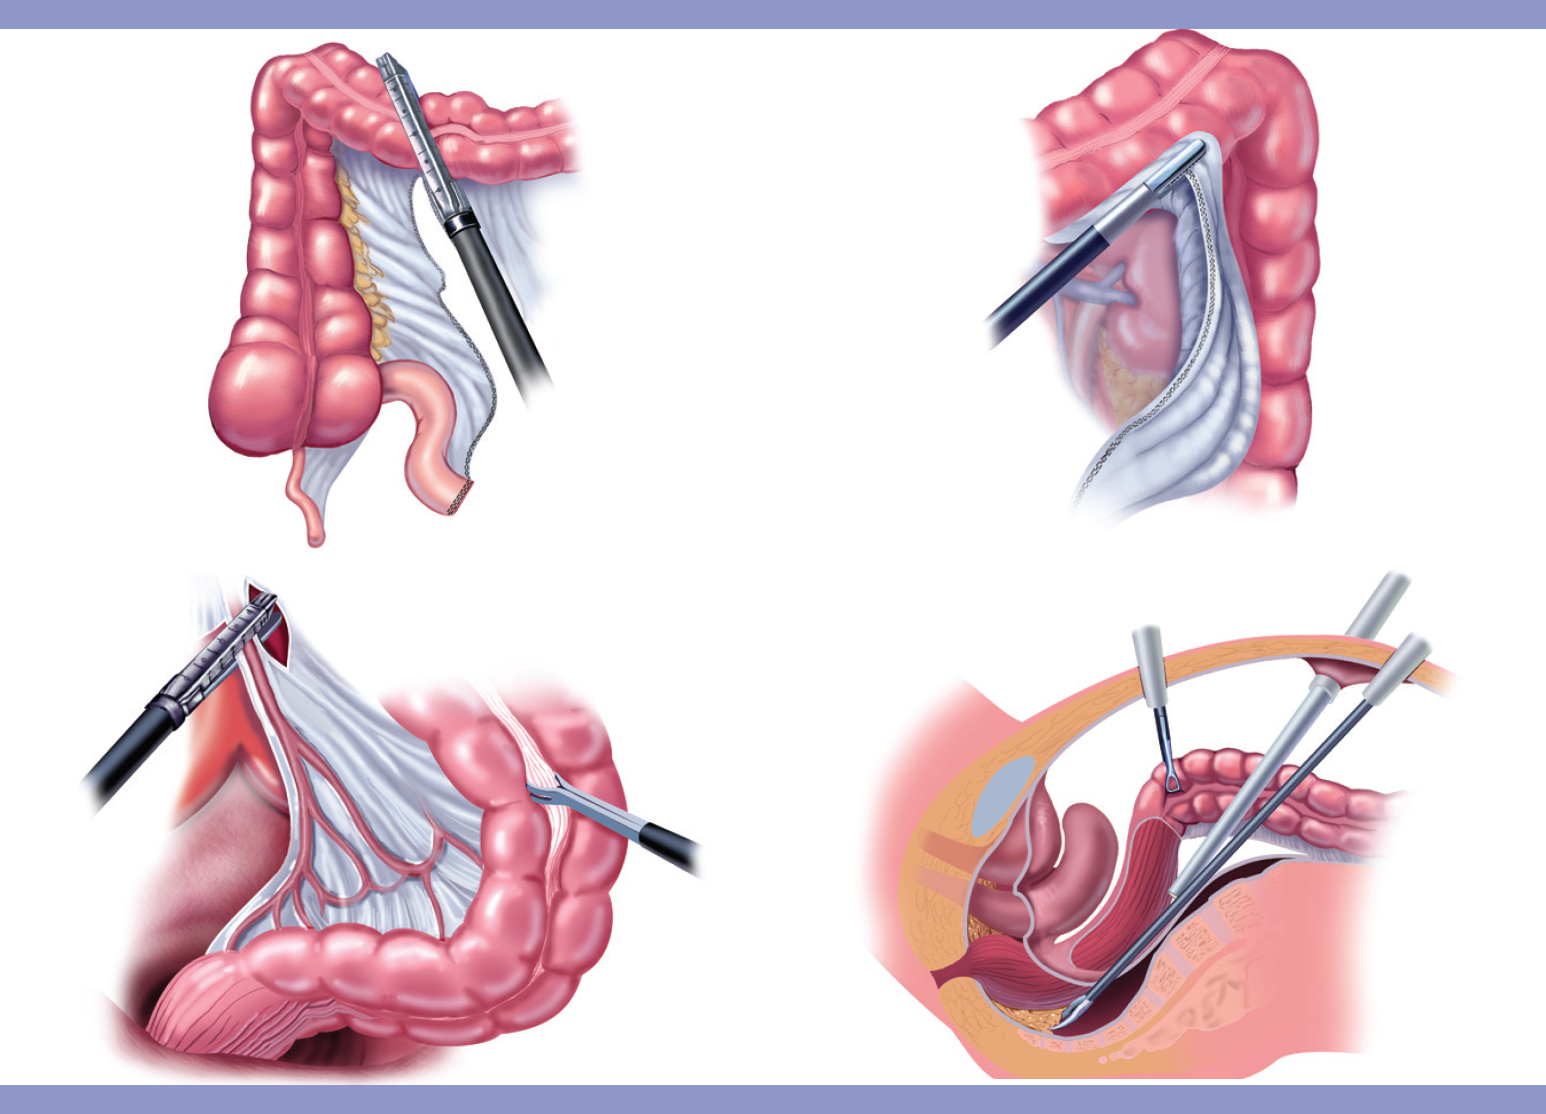 Consult with Dr. Venugopal Pareek for Colon Cancer Surgery, One of the best Laparoscopic Appendix Removal Cost in Hyderabad